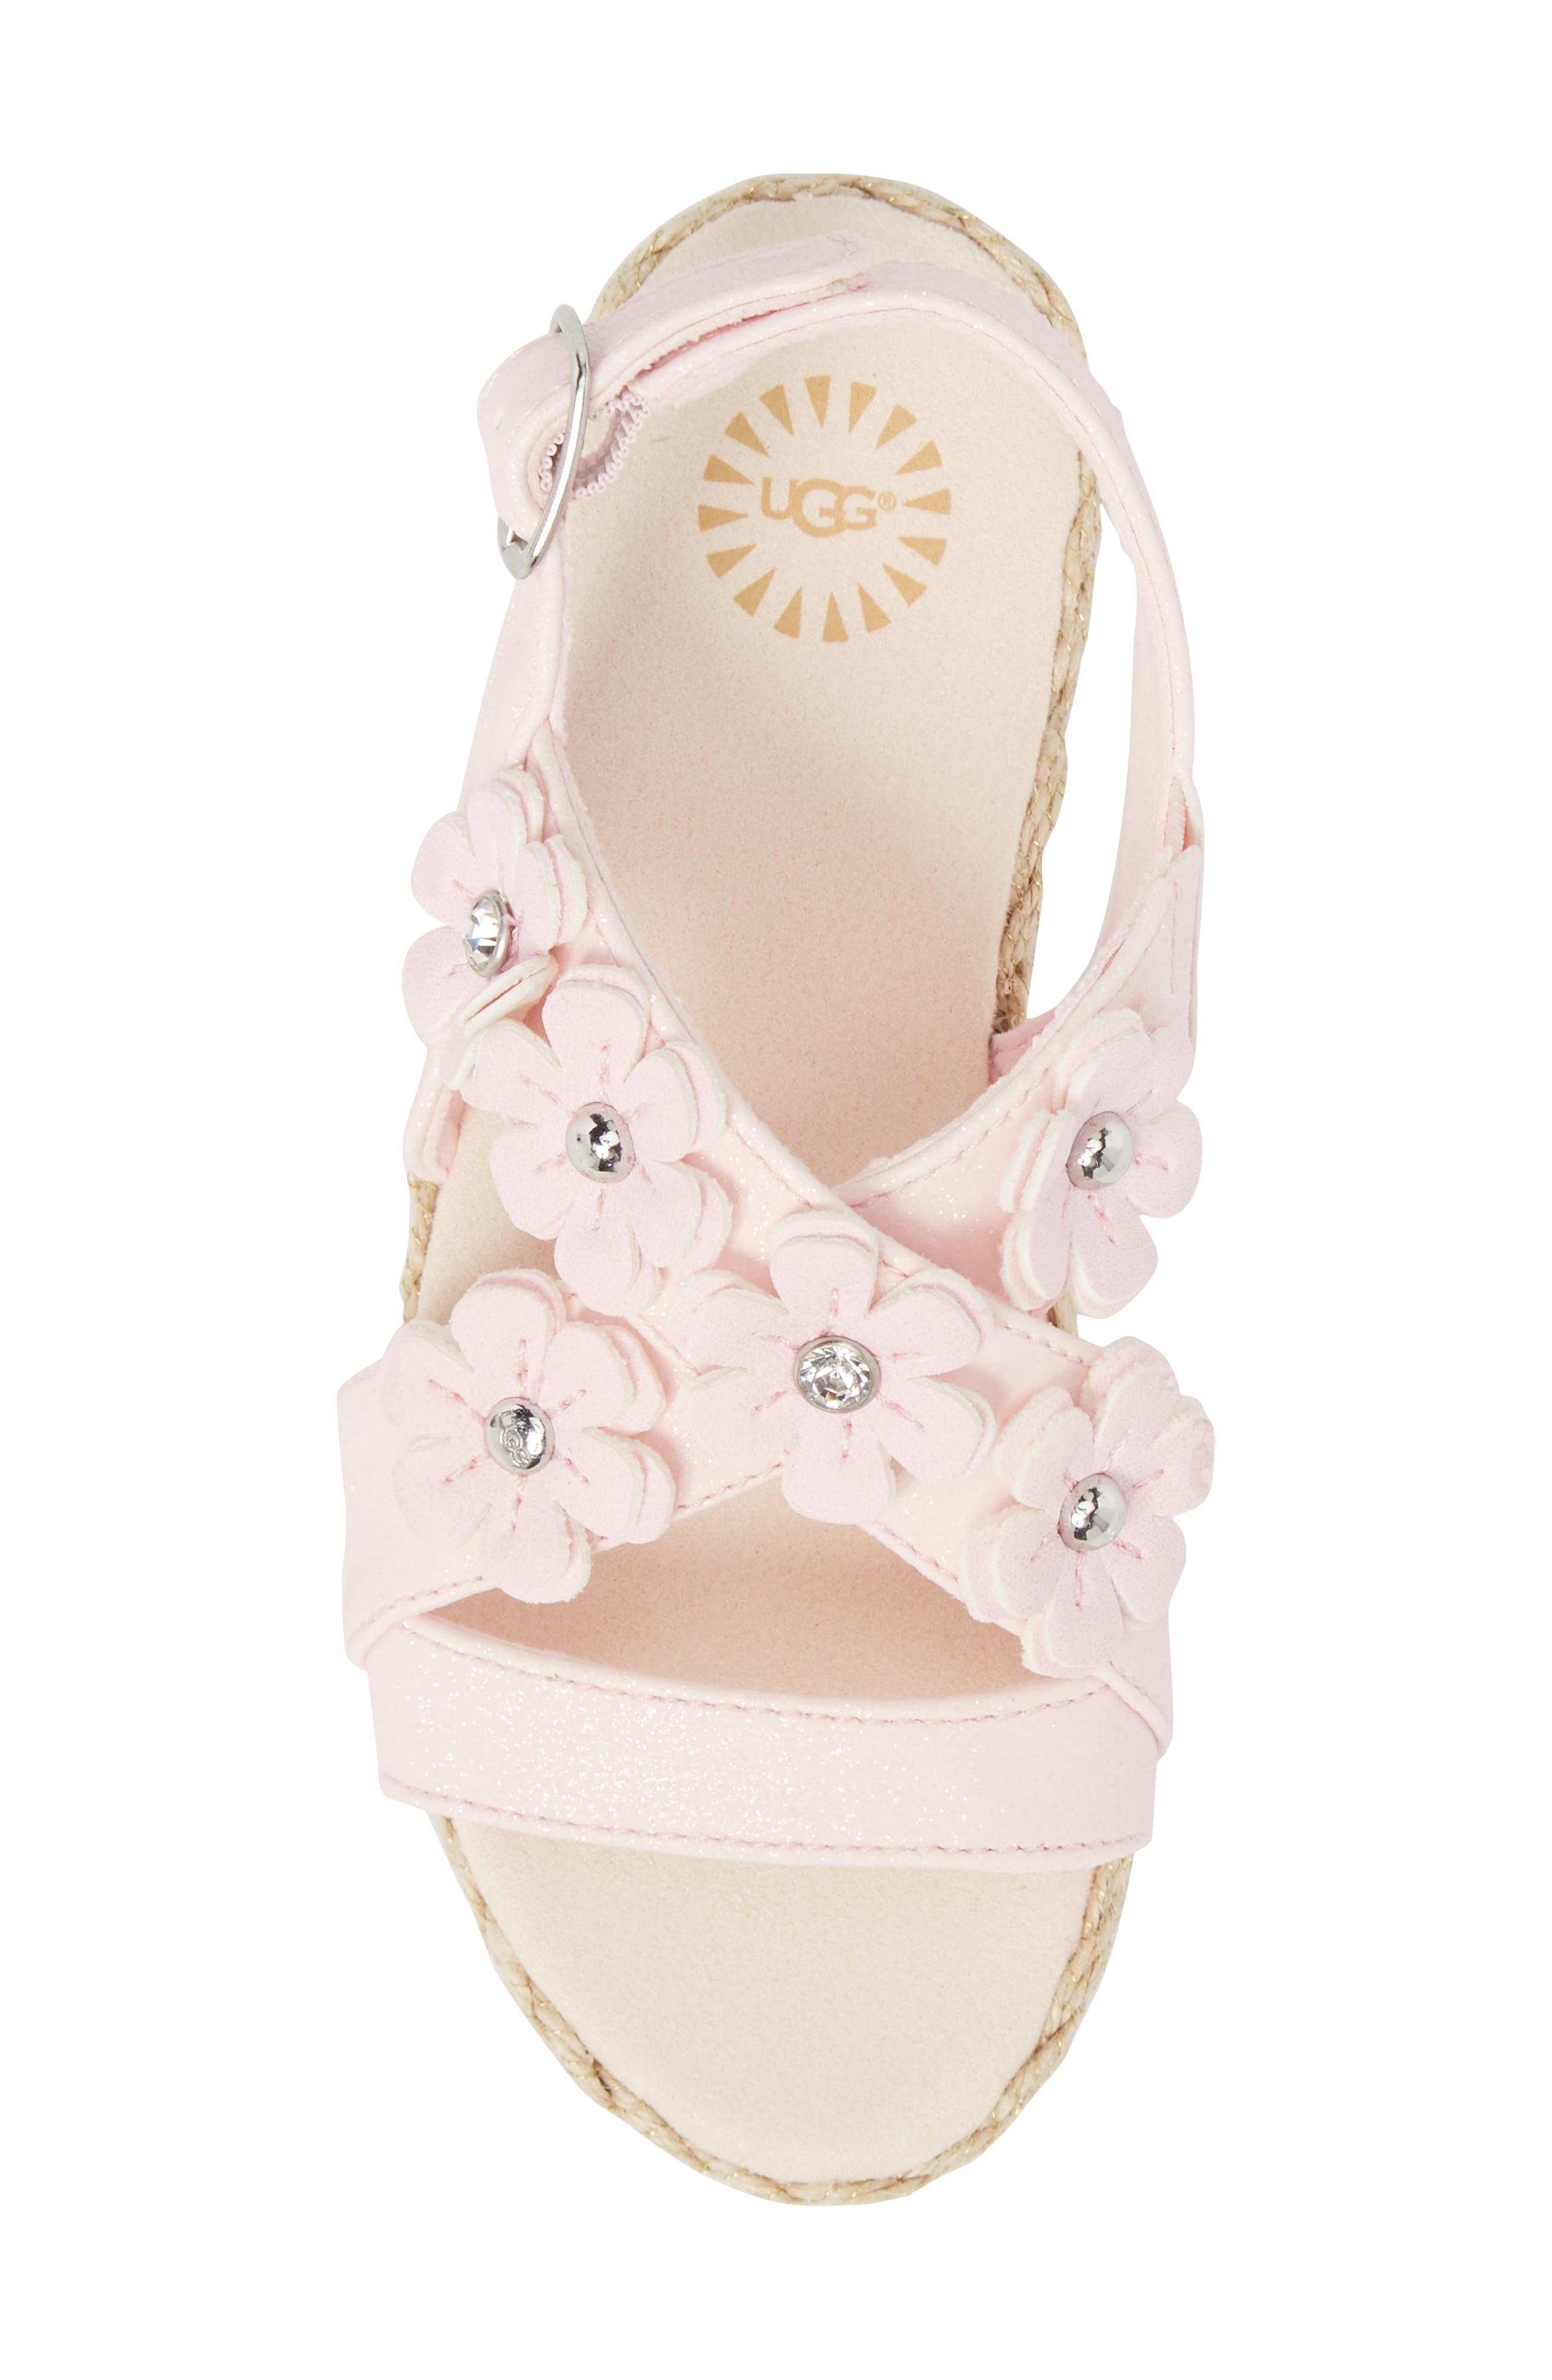 Allairey Sparkles Espadrille Sandal,                             Alternate thumbnail 5, color,                             SEASHELL PINK